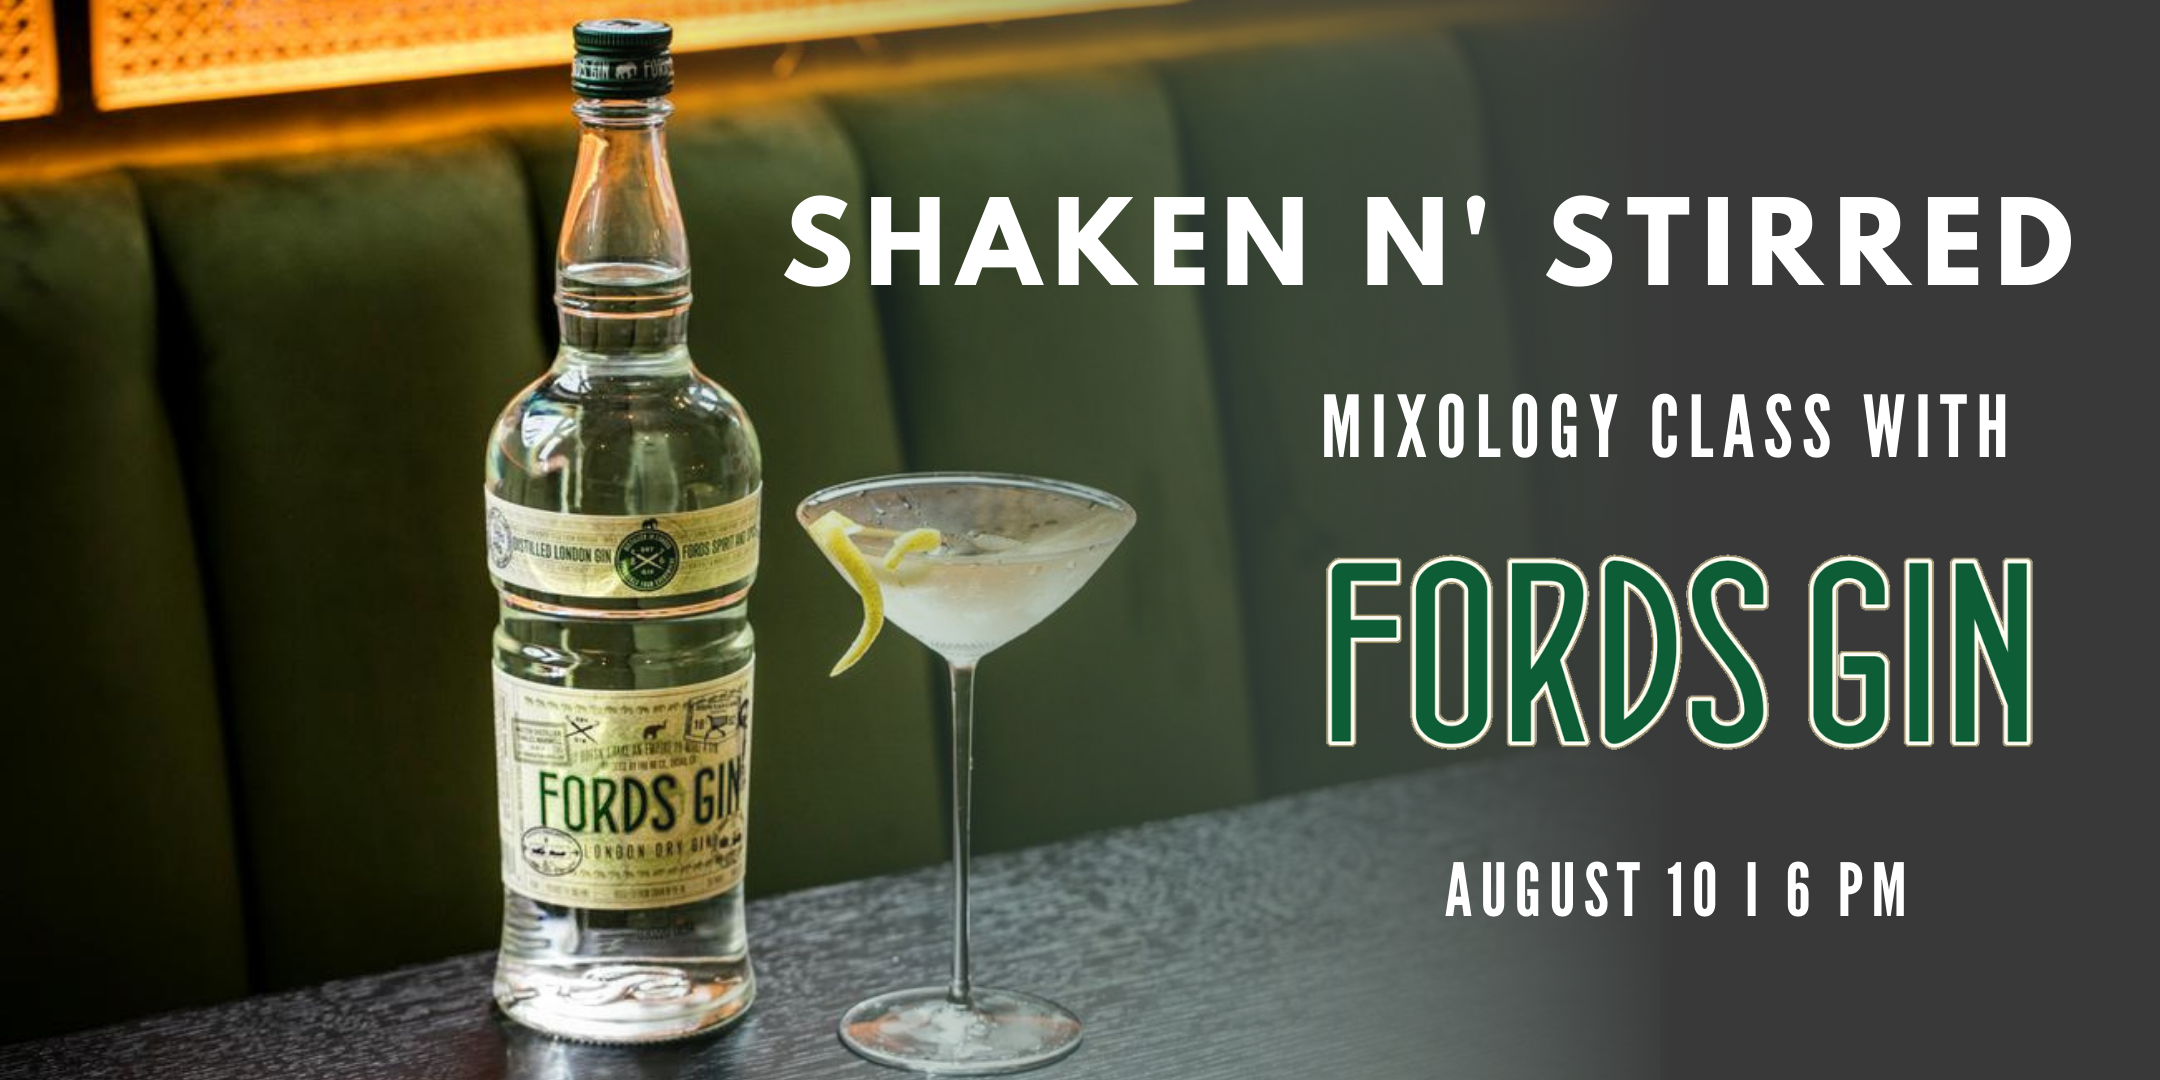 Promo image of Shaken N' Stirred: Fords Gin Classic Cocktails